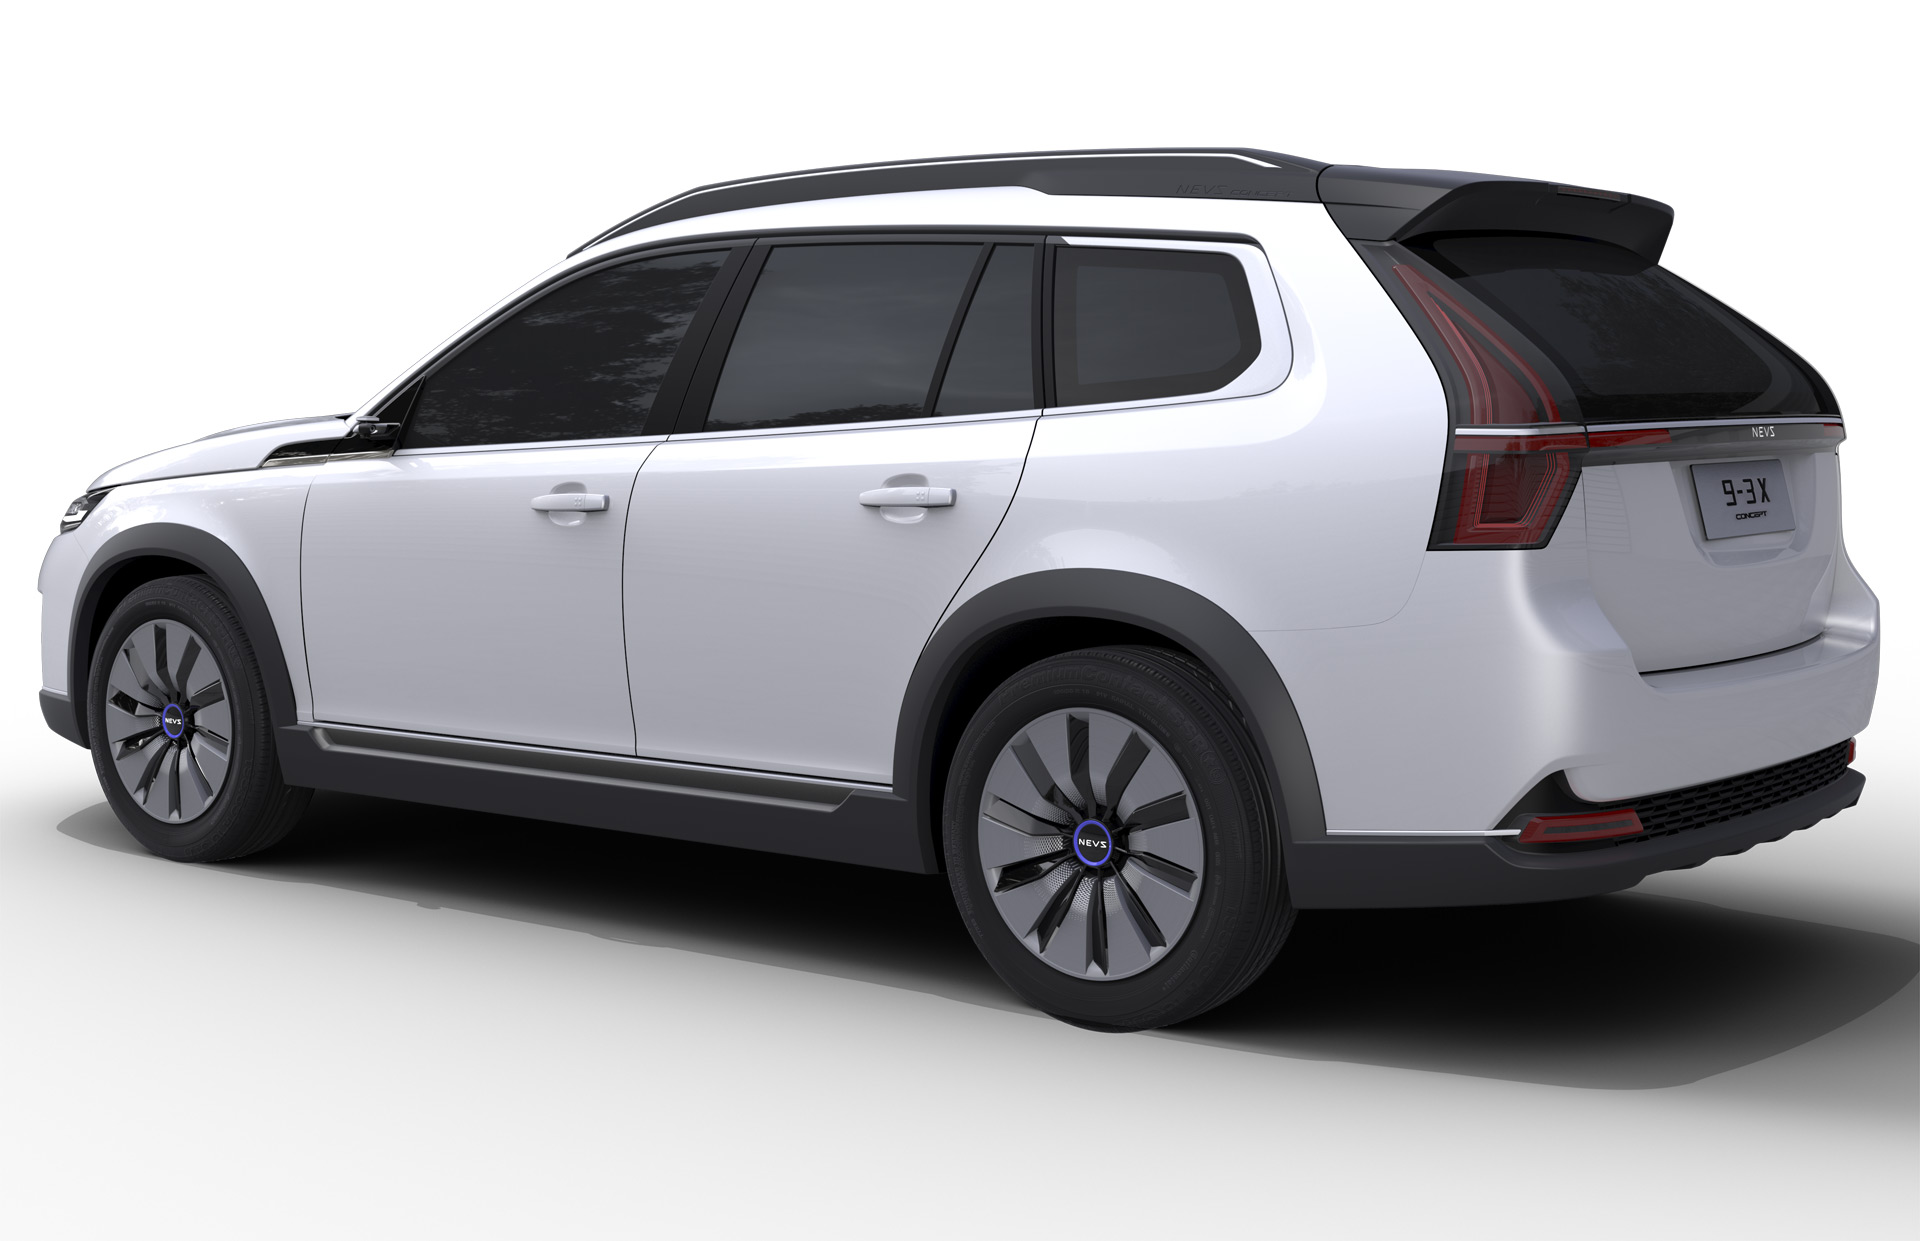 2017 Honda Wr V Mini Crossover Revealed In Brazil 112846 besides Jaguar F Type R 2014 furthermore 2012 Toyota Fj Cruiser Manual moreover 2016 in addition 2014 Acura Tl Special Edition Review Test Drive. on sporty subaru